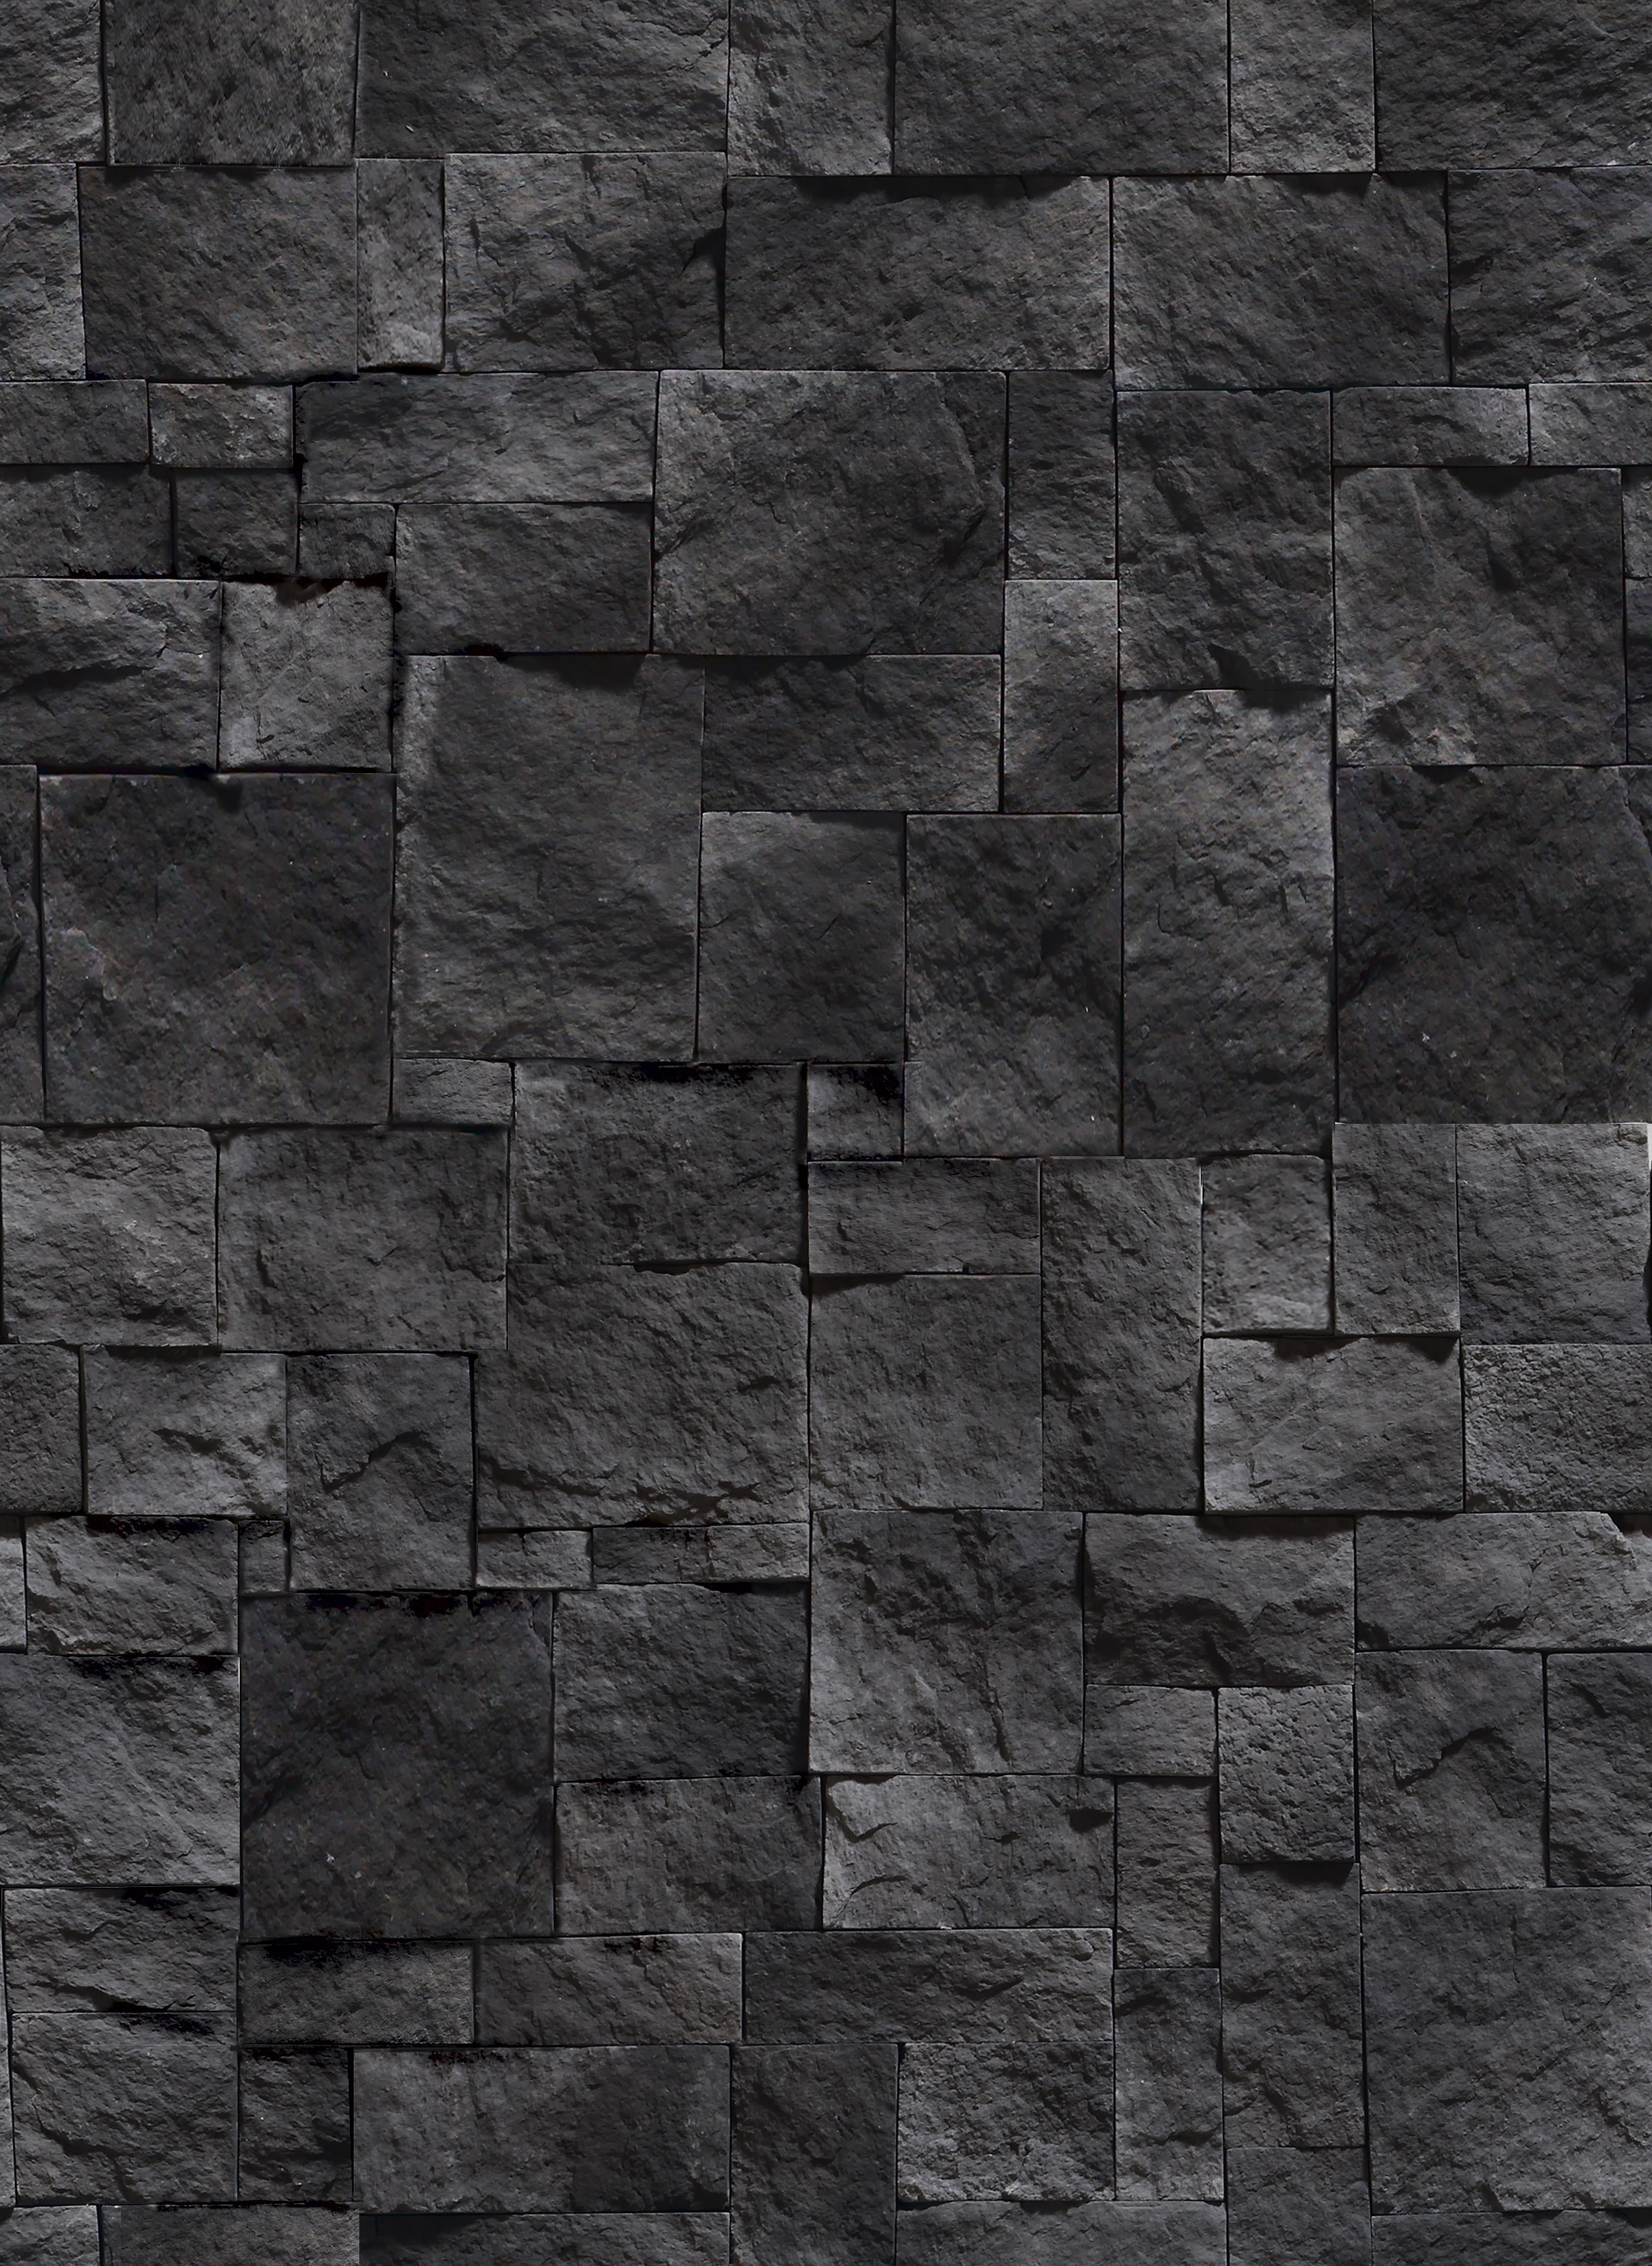 Black Stone Download Photo Background Texture Stone